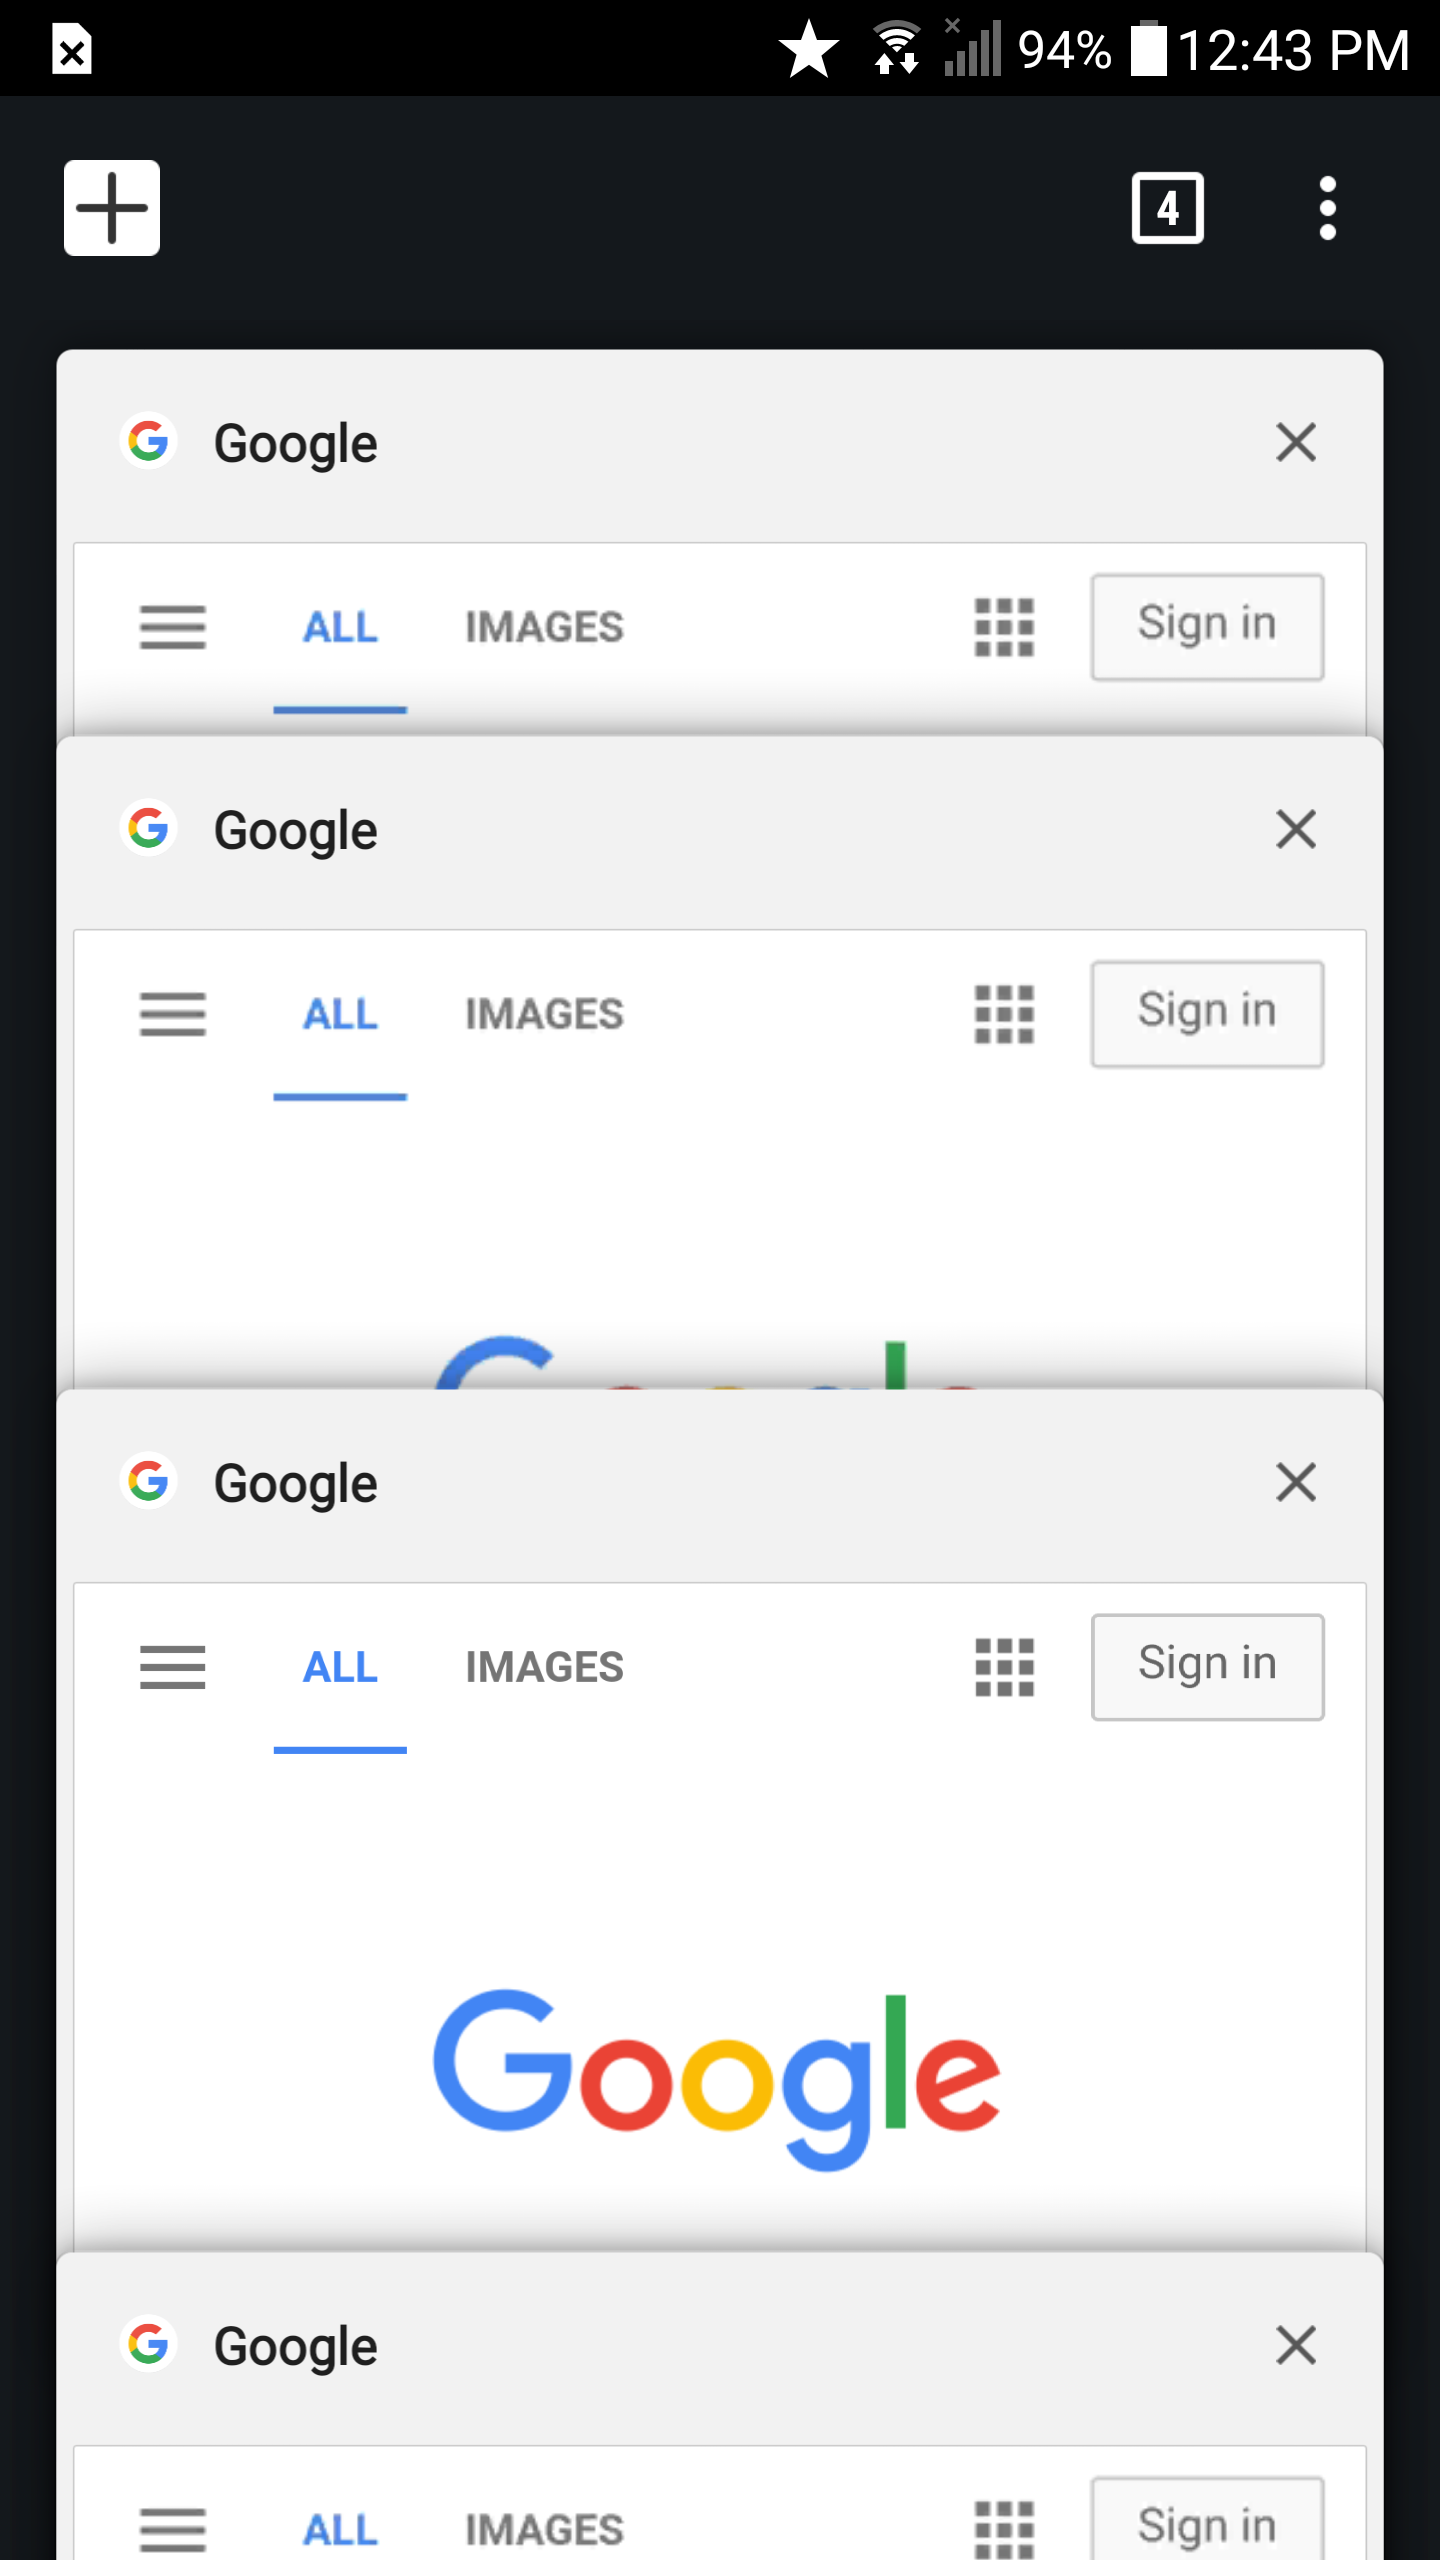 Why is the status bar white in the new version of Chrome for